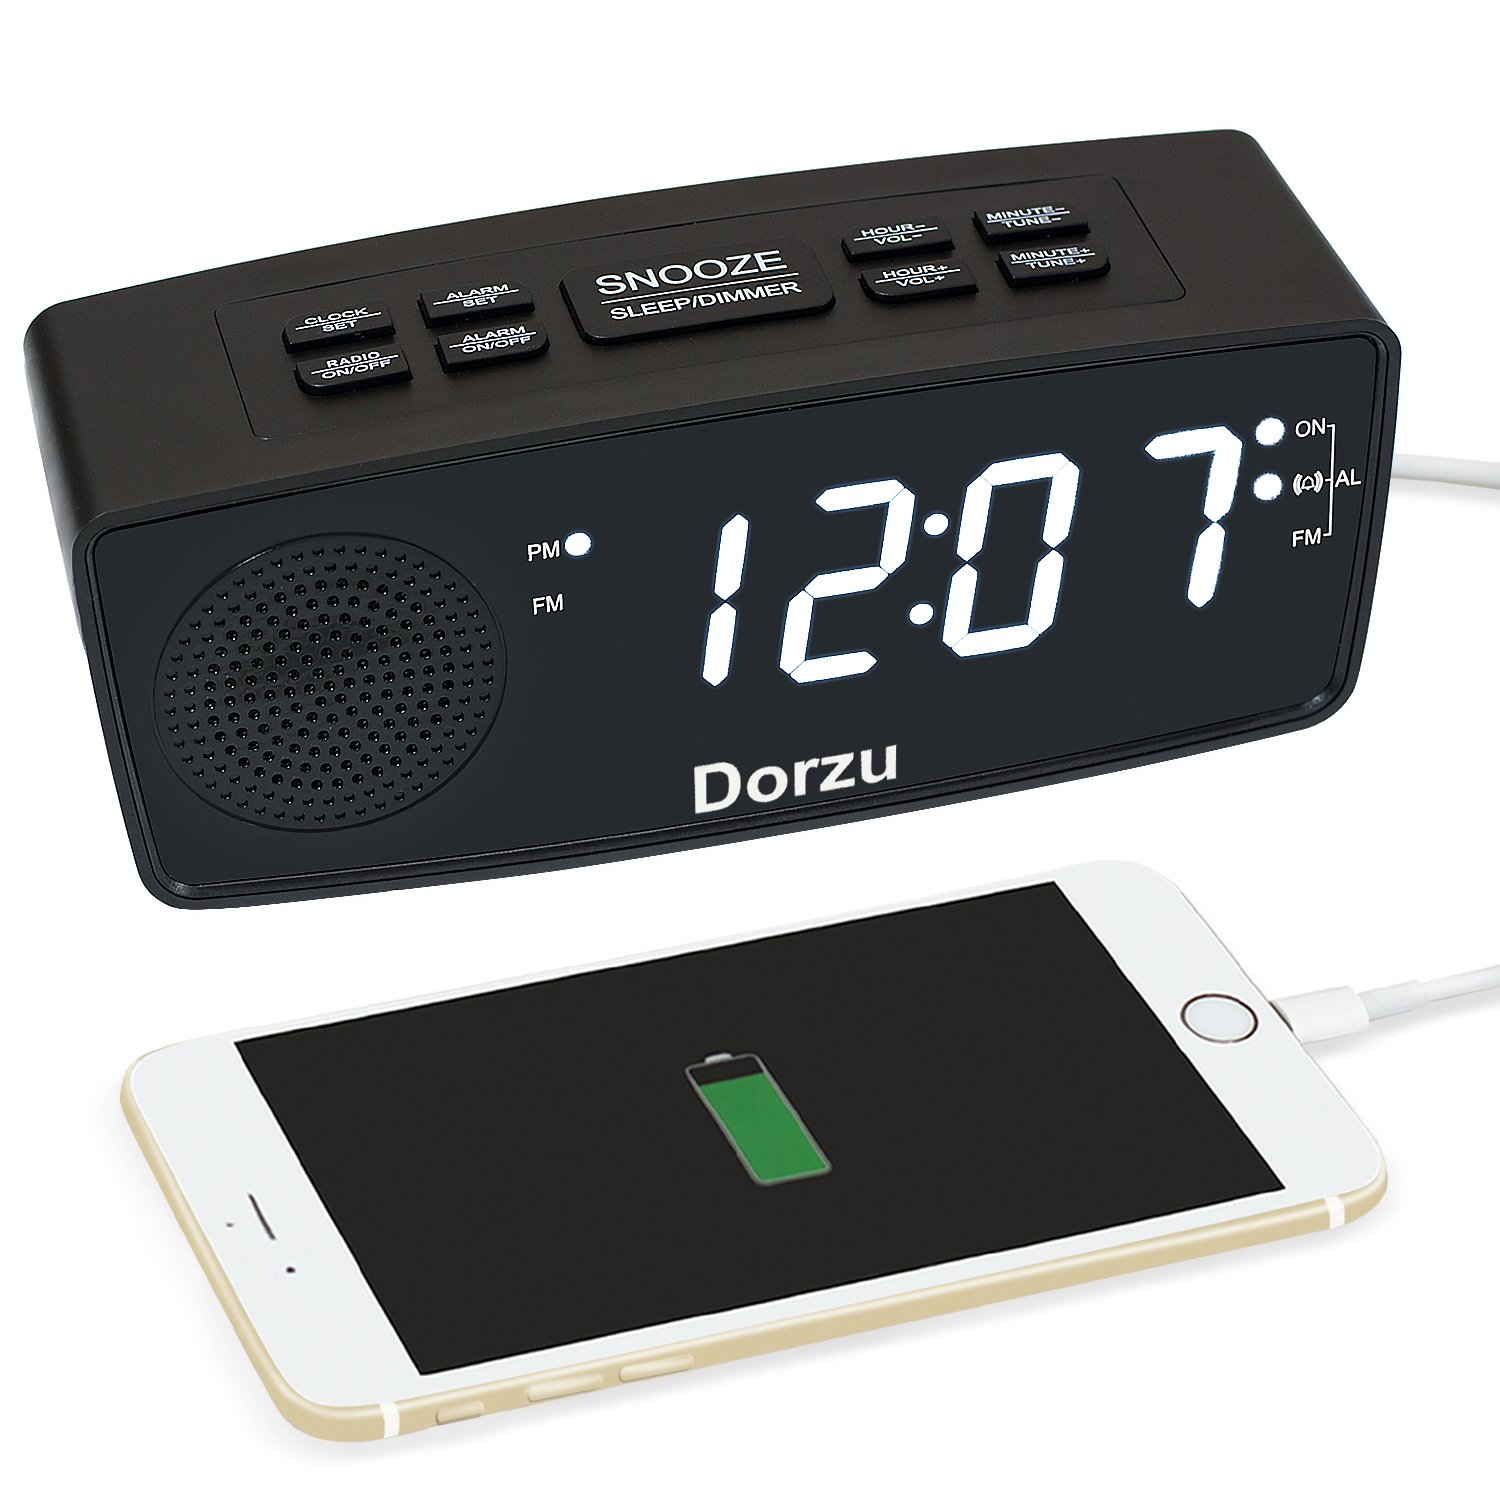 USB Alarm Clock Radio, Digital FM Radio Alarm Clock with USB Fast Charge for Bedrooms(Red,USB) Dorzu